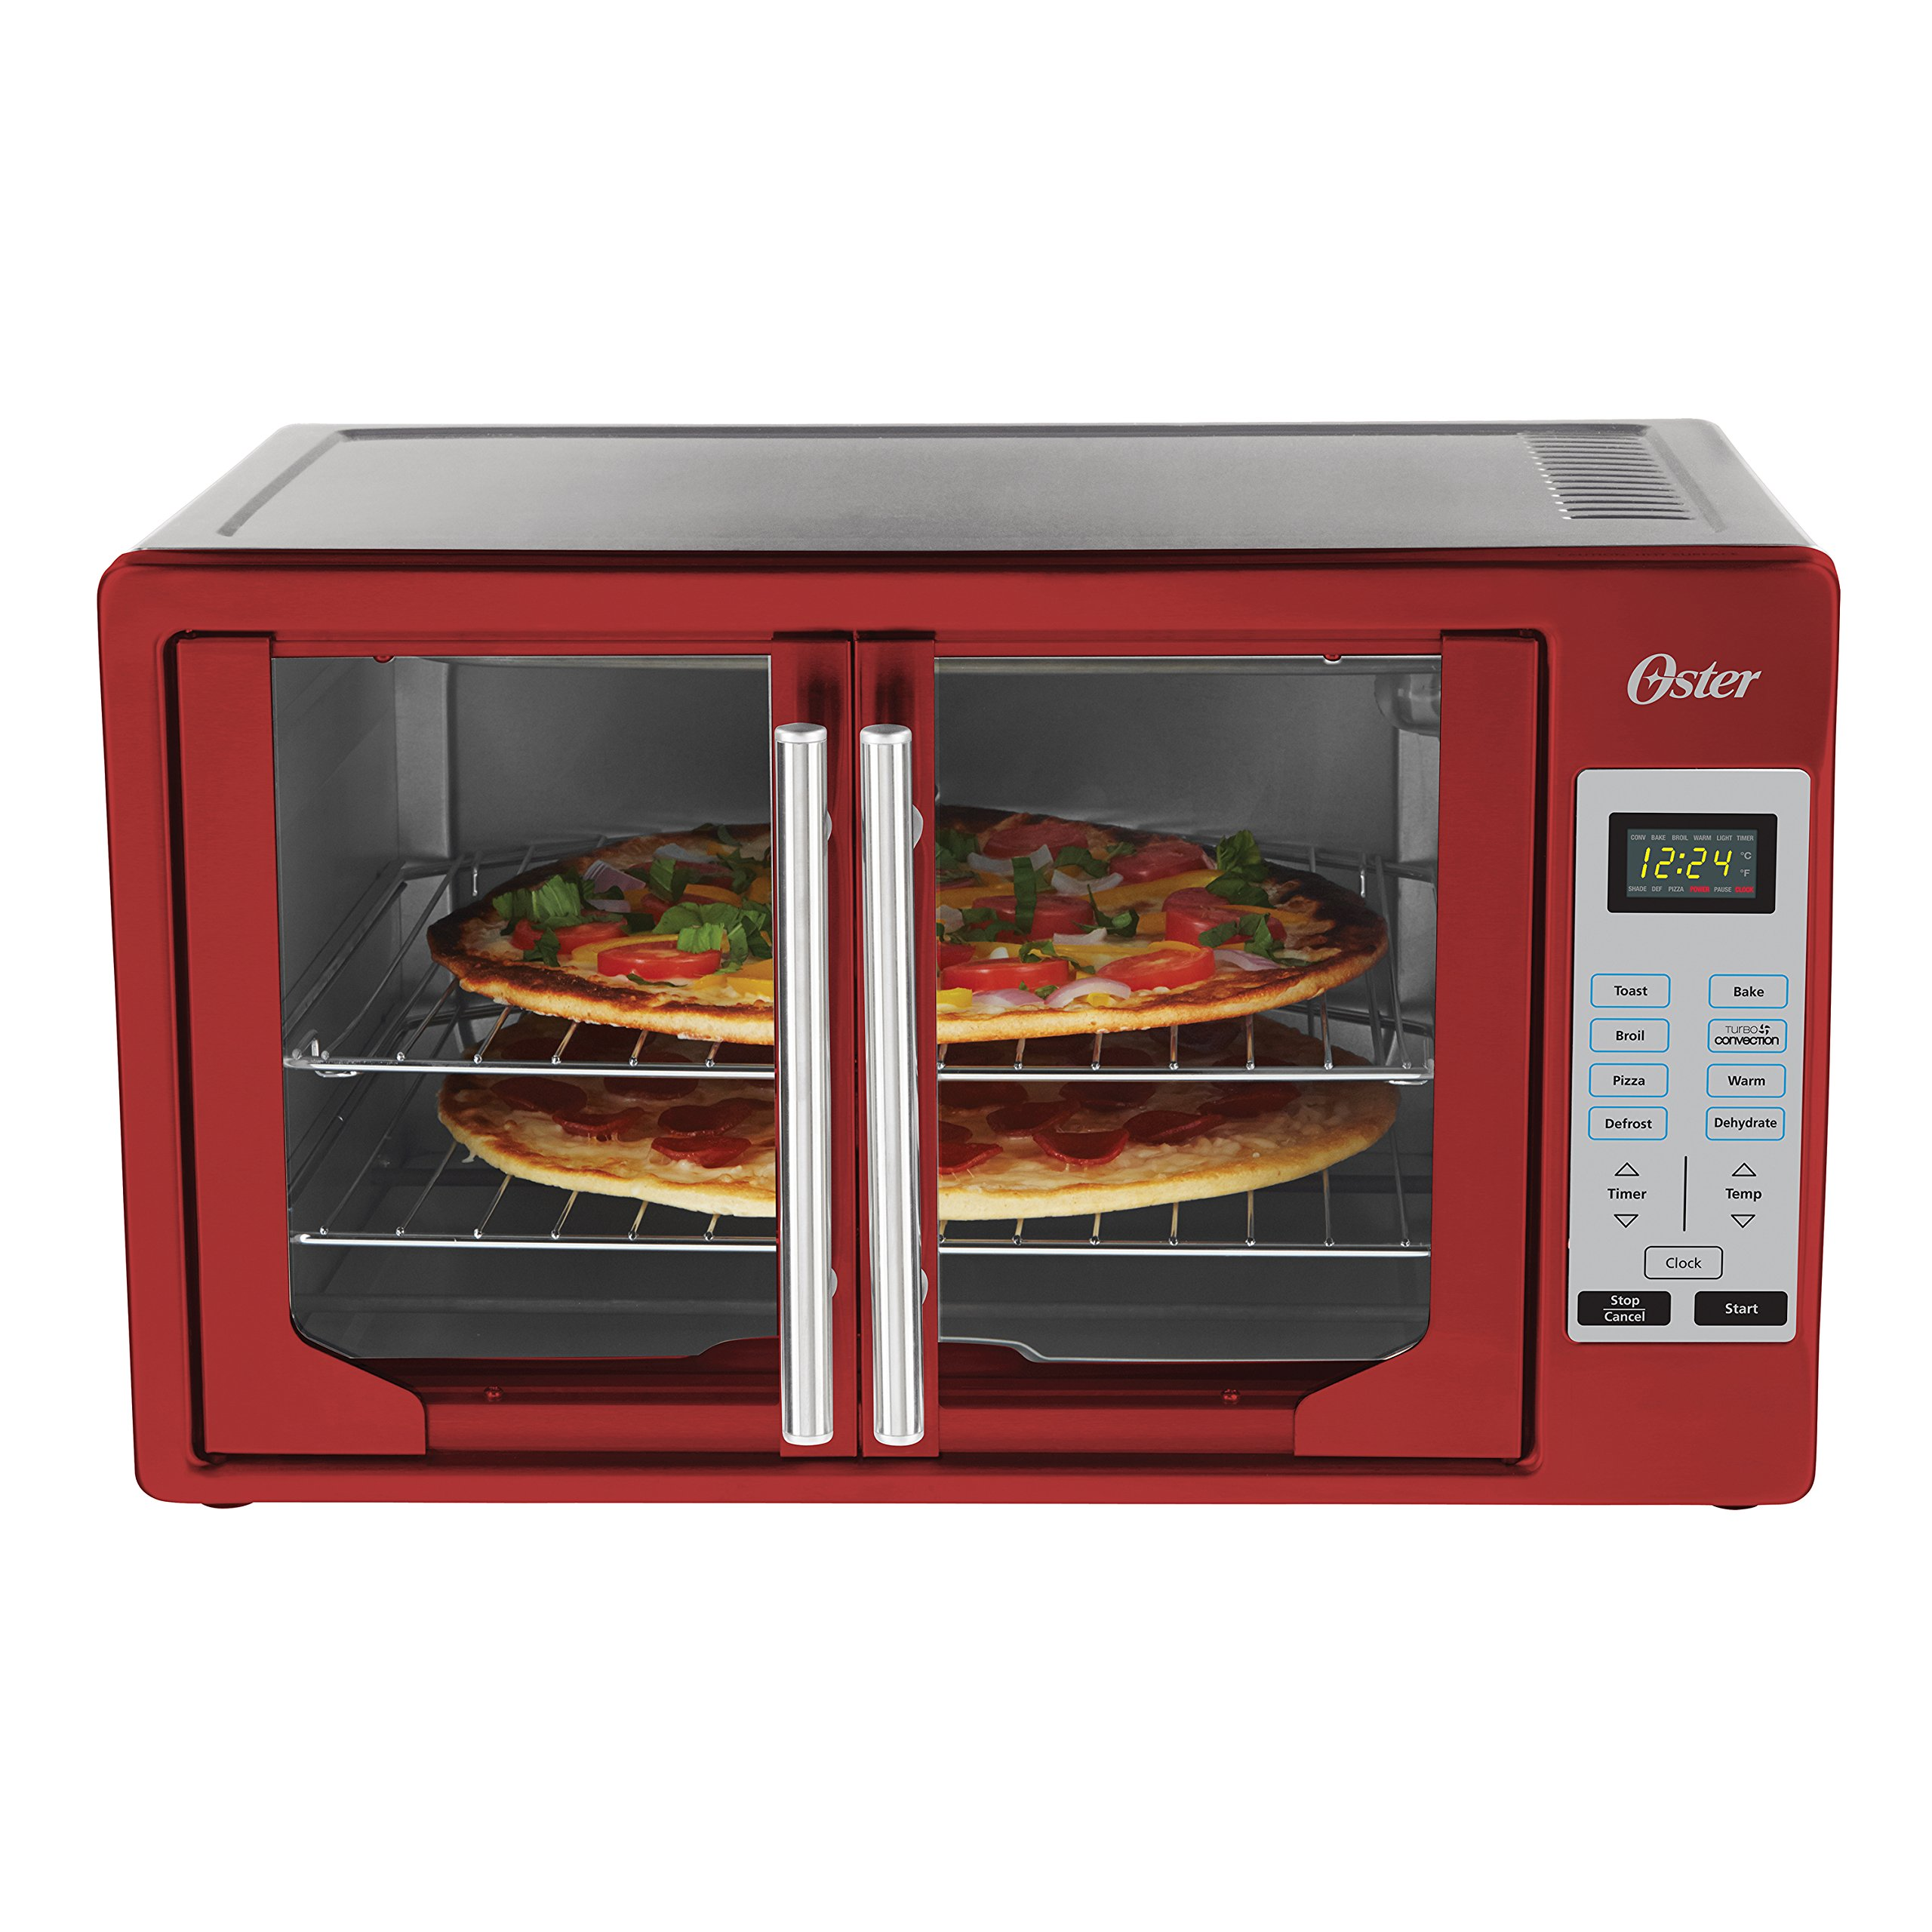 Oster TSSTTVFDDG-R French Door Toaster Oven, Extra Large, Red by Oster